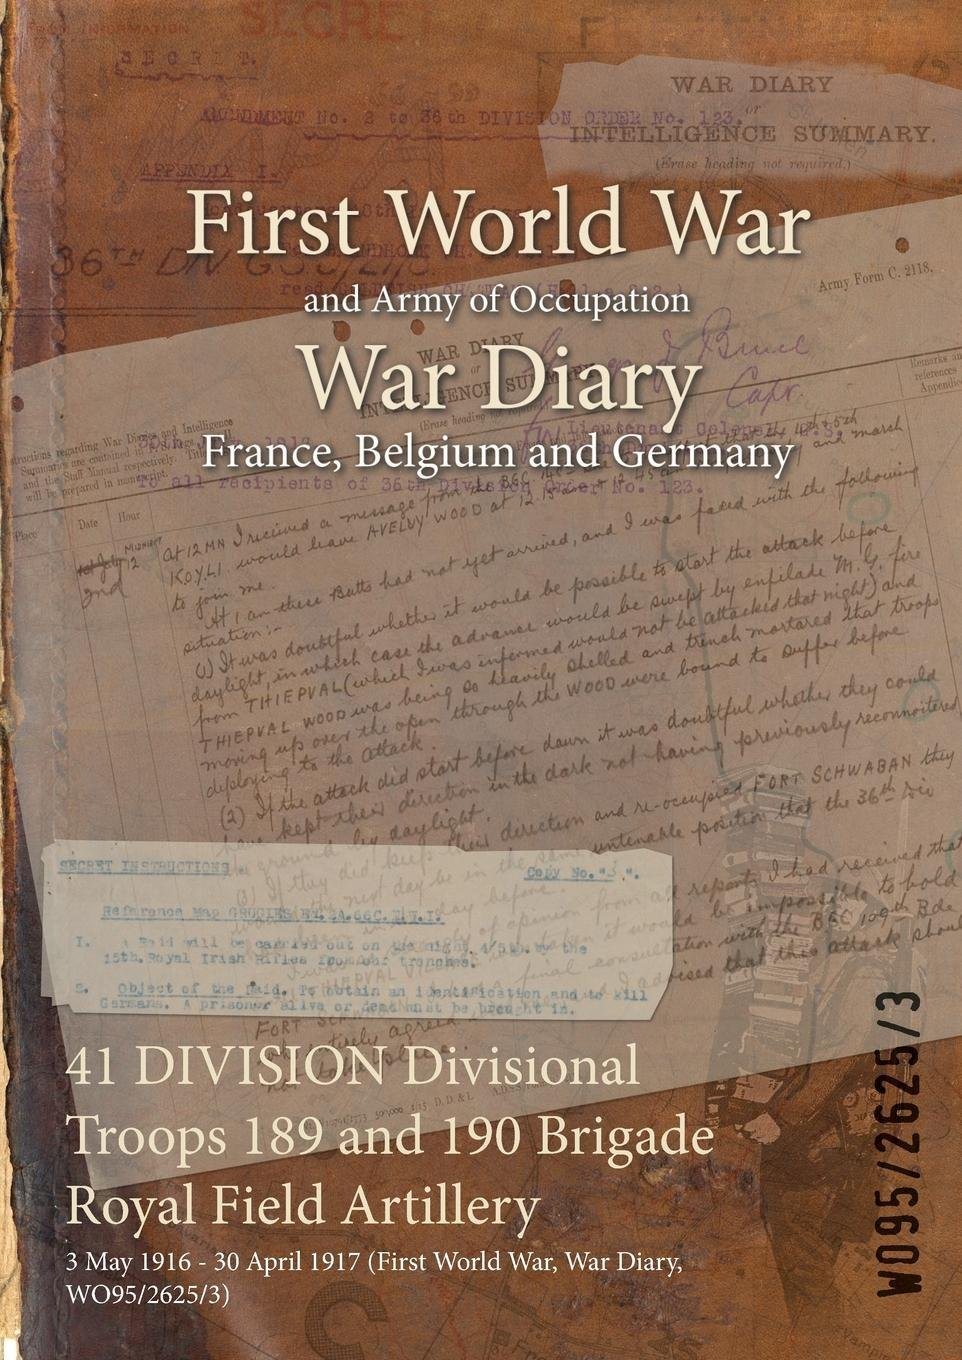 Download 41 Division Divisional Troops 189 and 190 Brigade Royal Field Artillery: 3 May 1916 - 30 April 1917 (First World War, War Diary, Wo95/2625/3) ebook